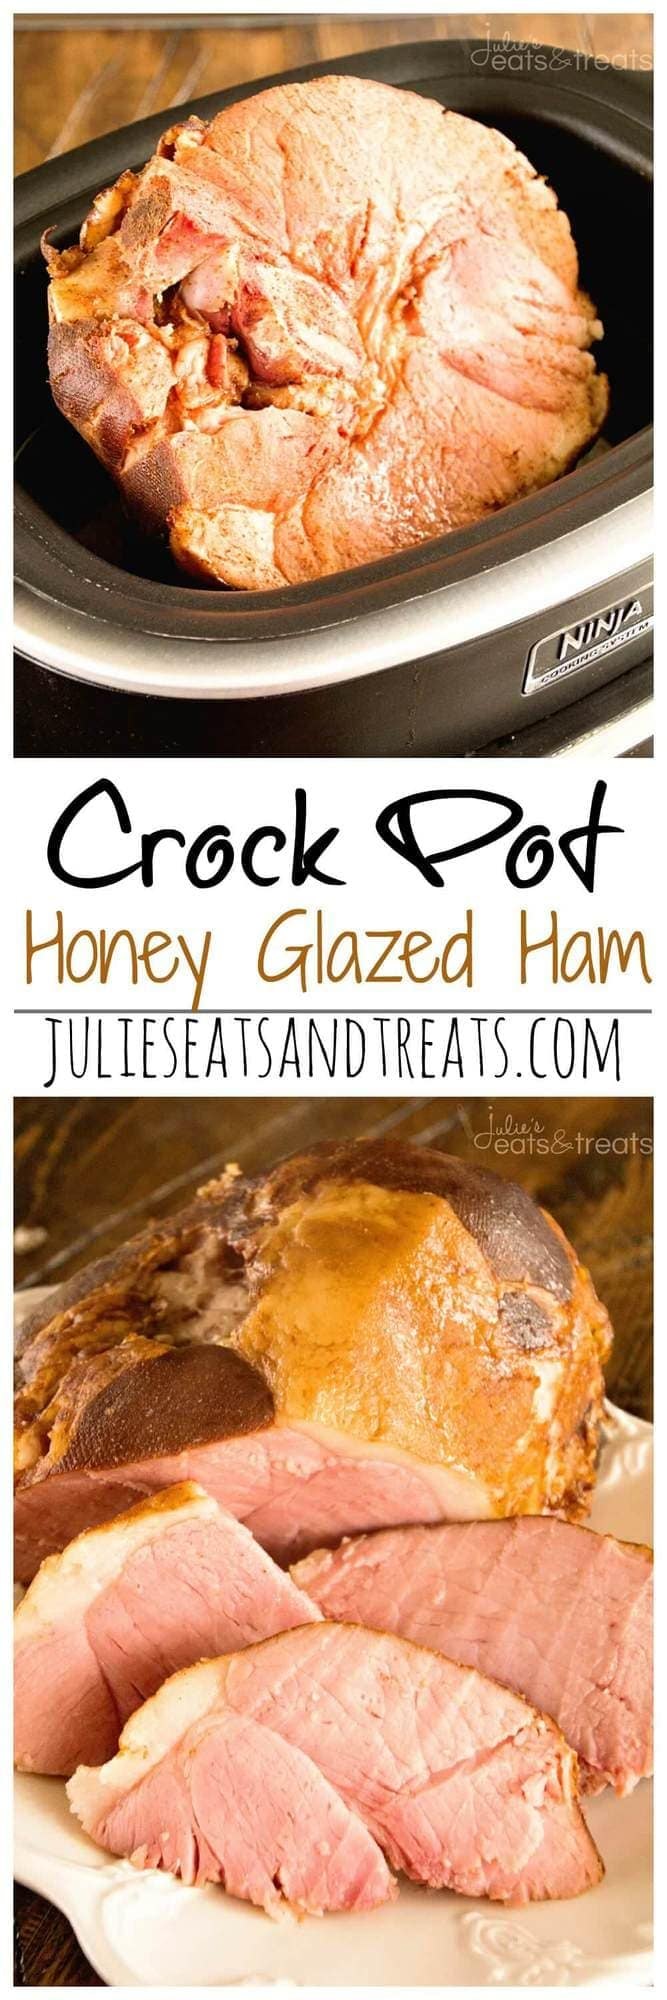 Crock Pot Honey Glazed Ham ~ Easy Ham, Slow Cooked and Smothered in a Honey Glaze!